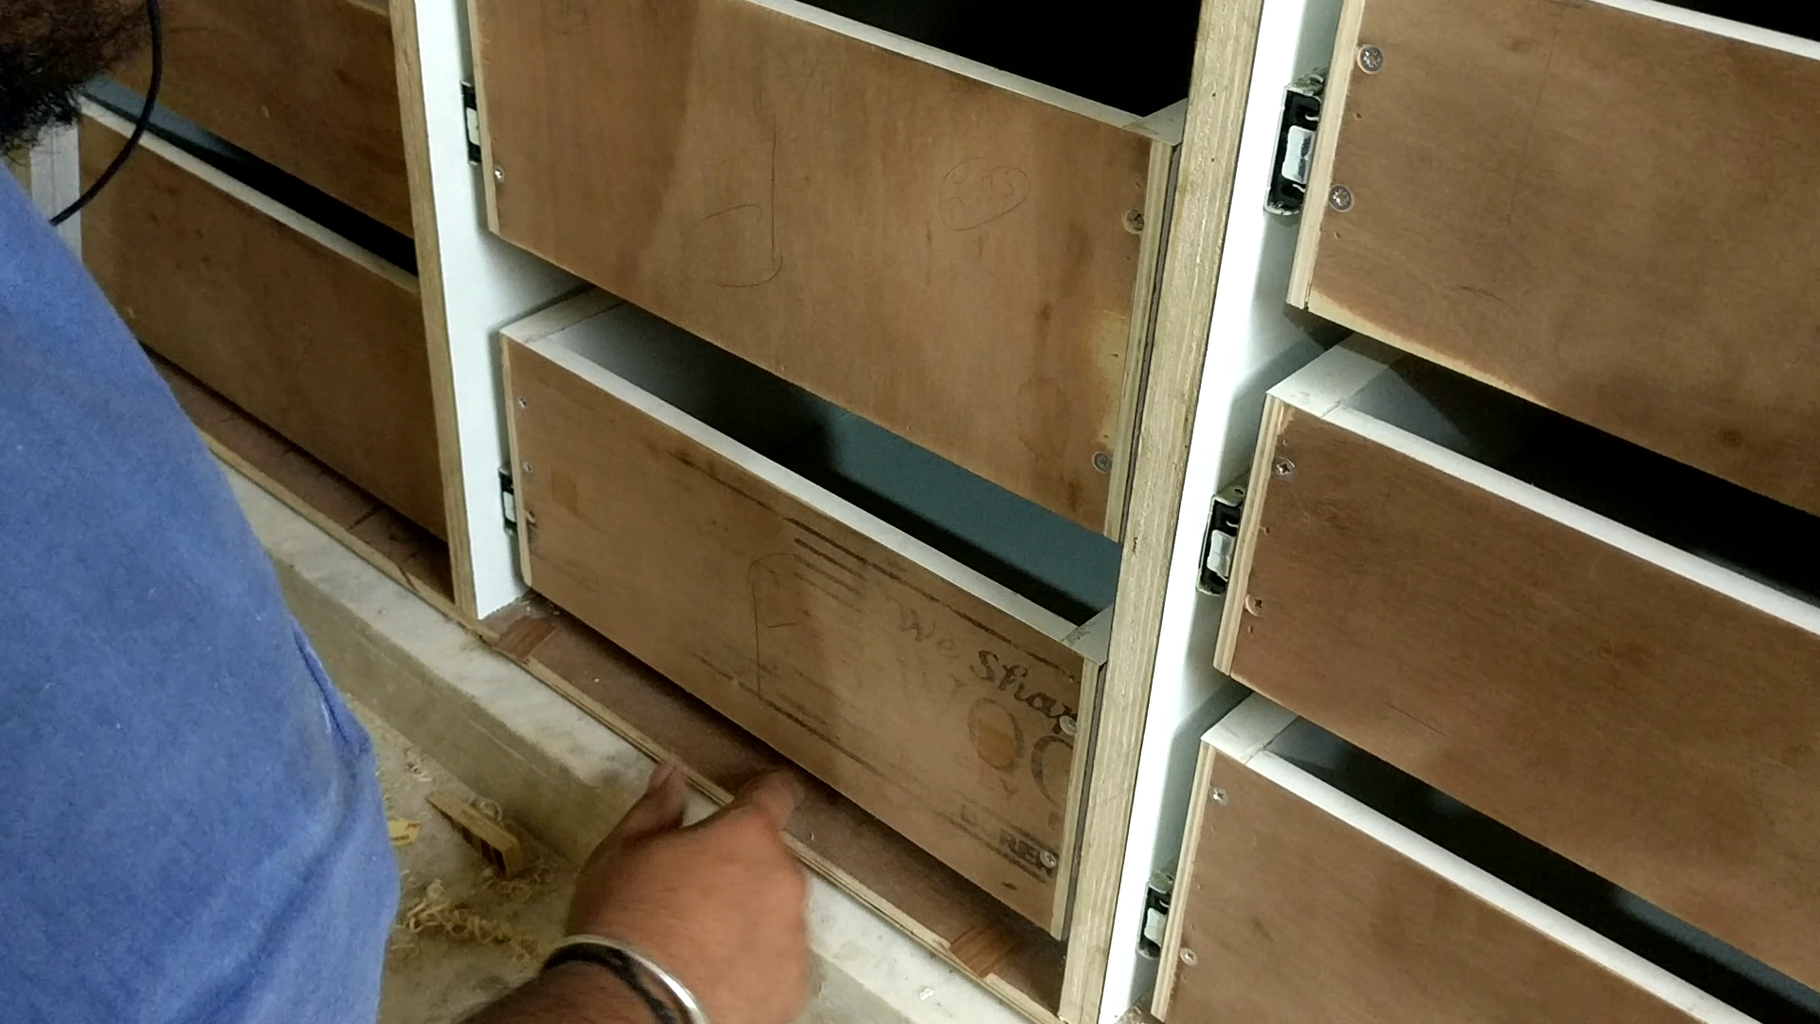 Installation of Drawer Fronts